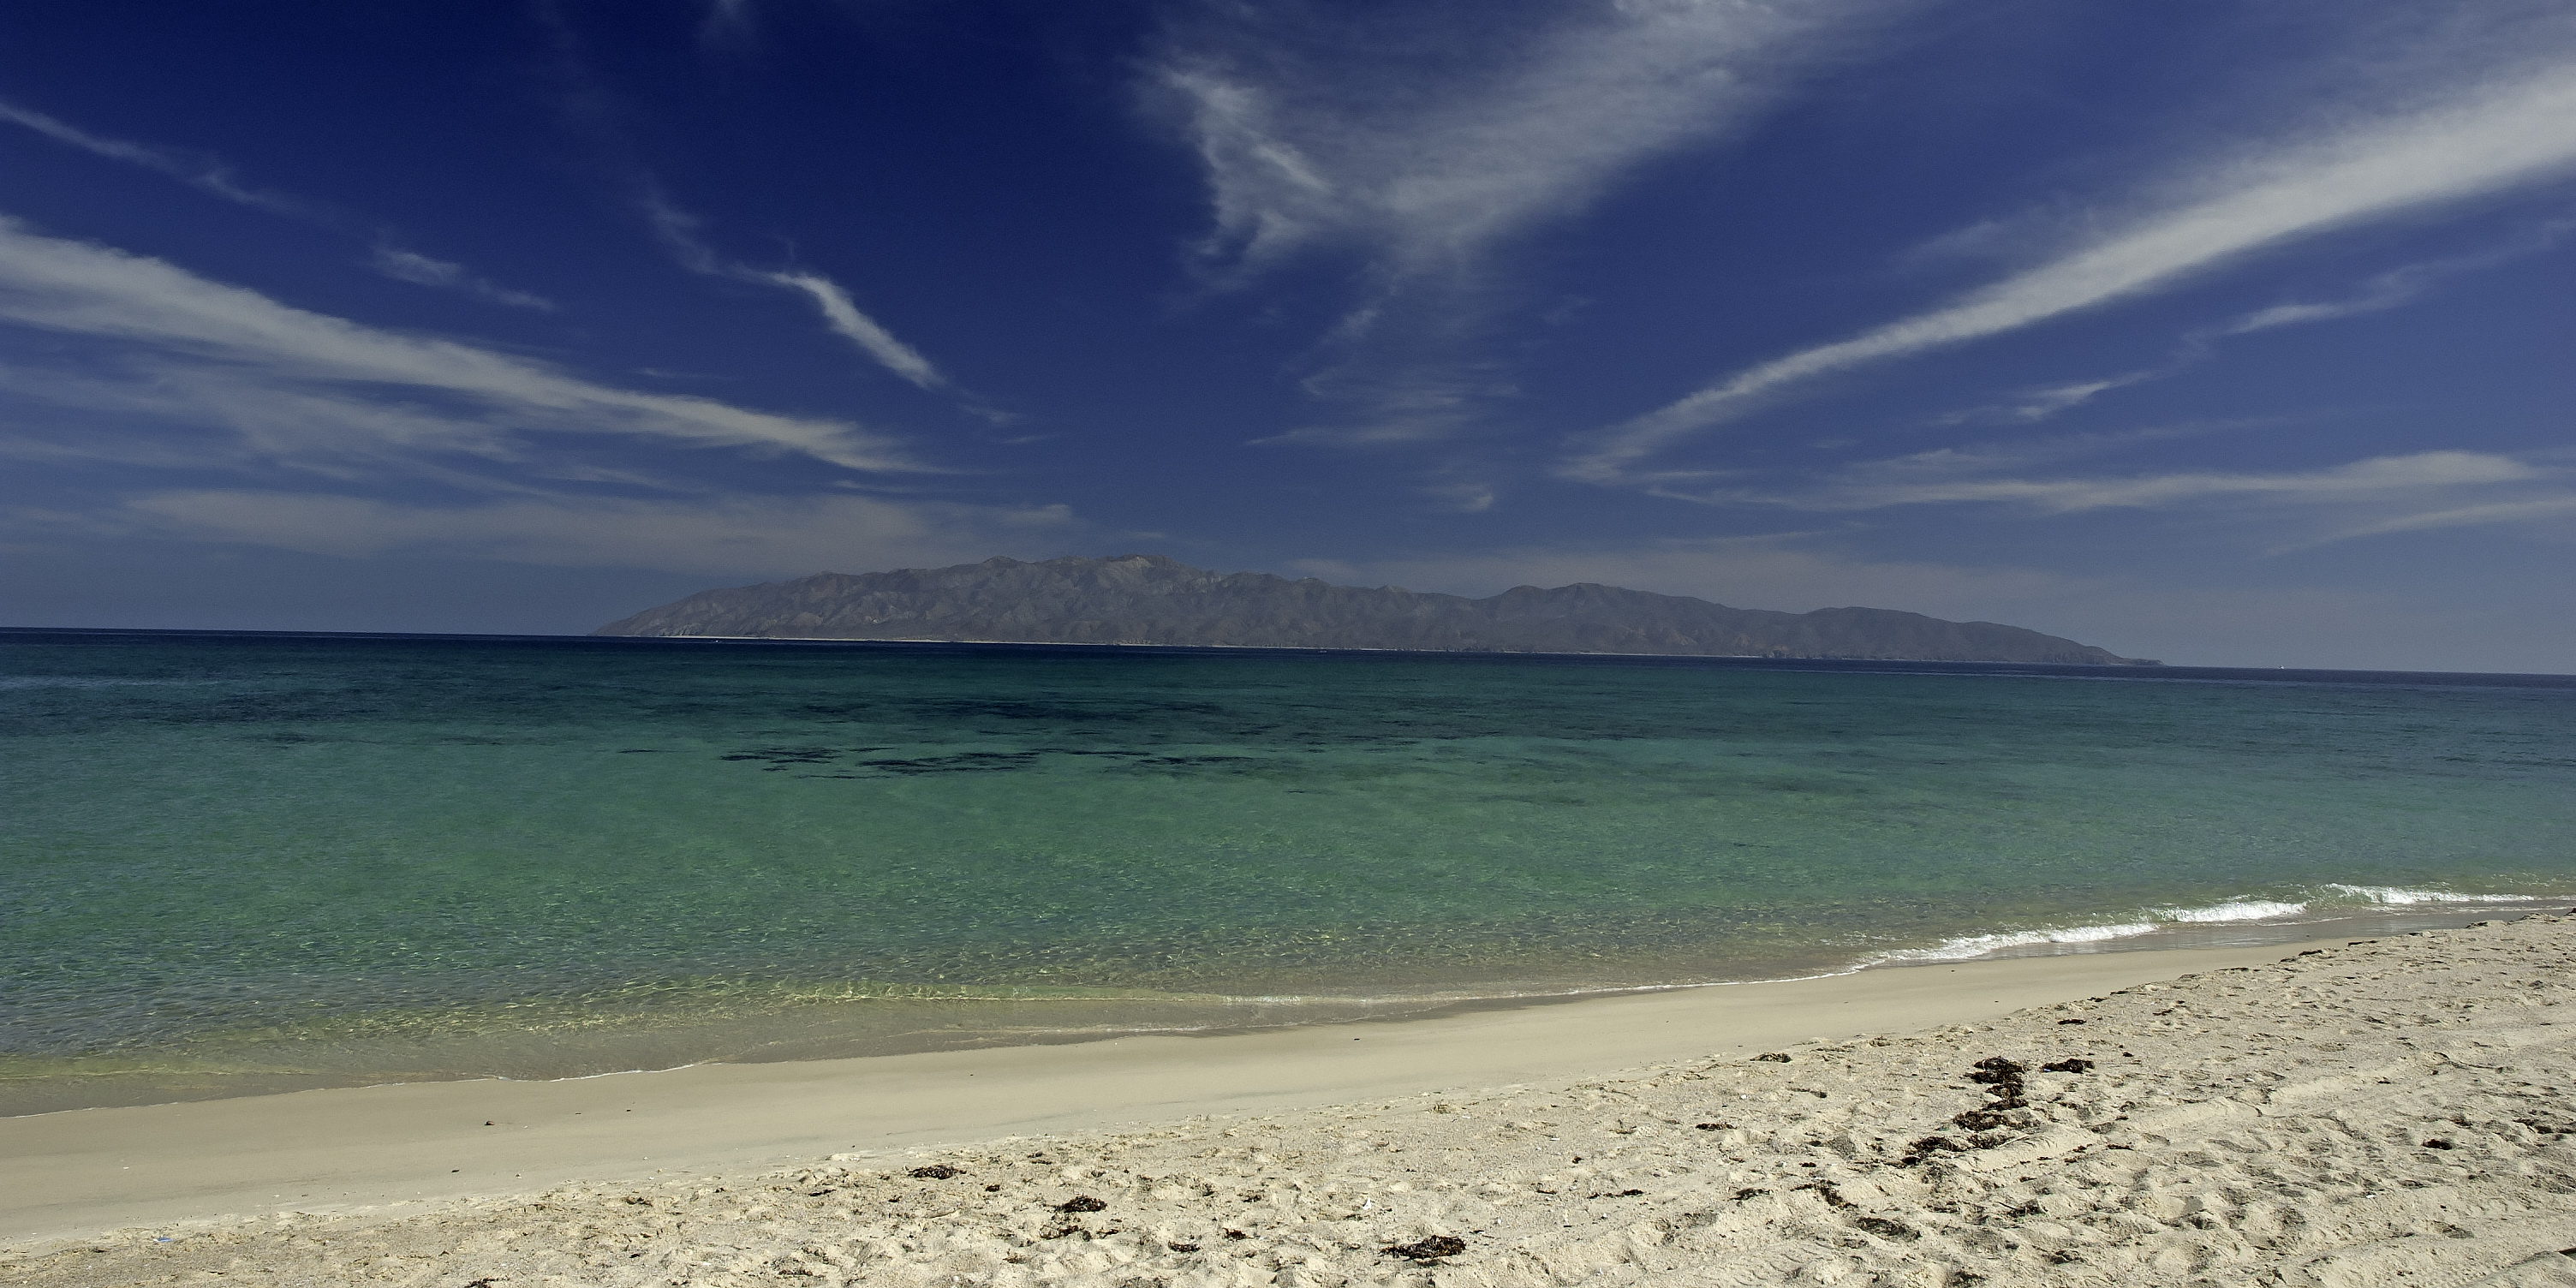 Great Beach (La Paz)